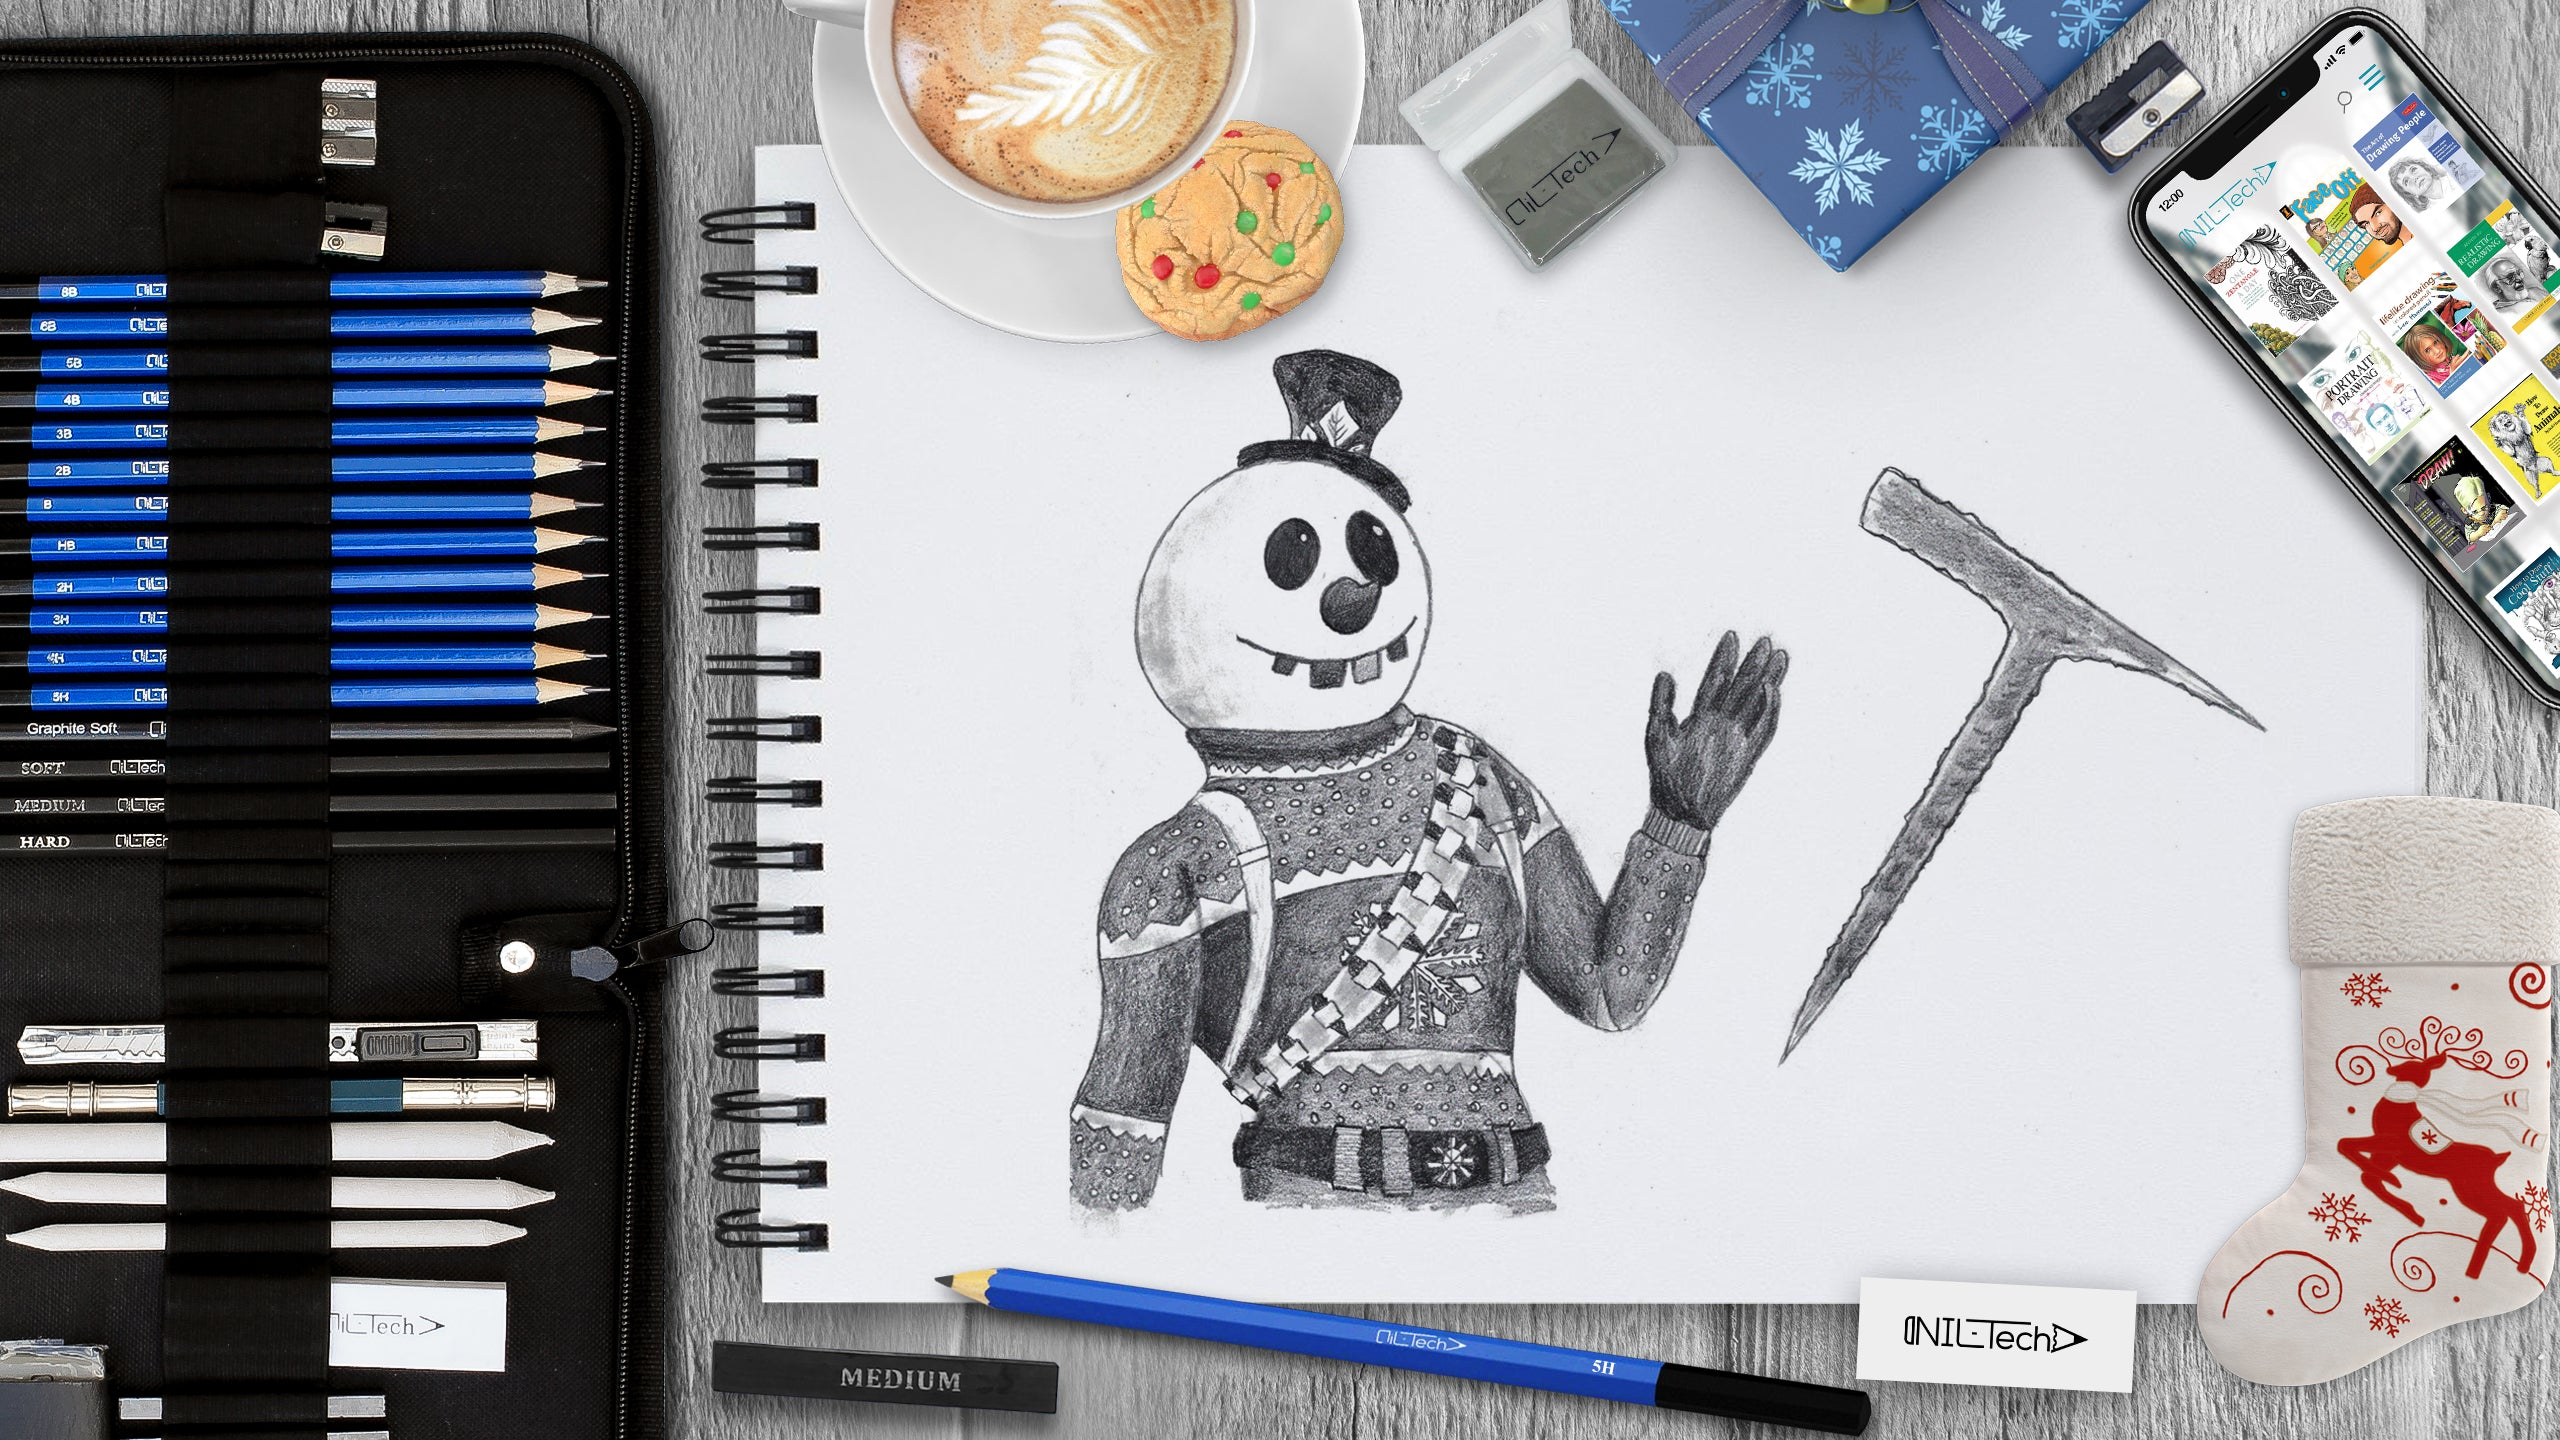 How to draw 'Snowman' Skin from Fortnite